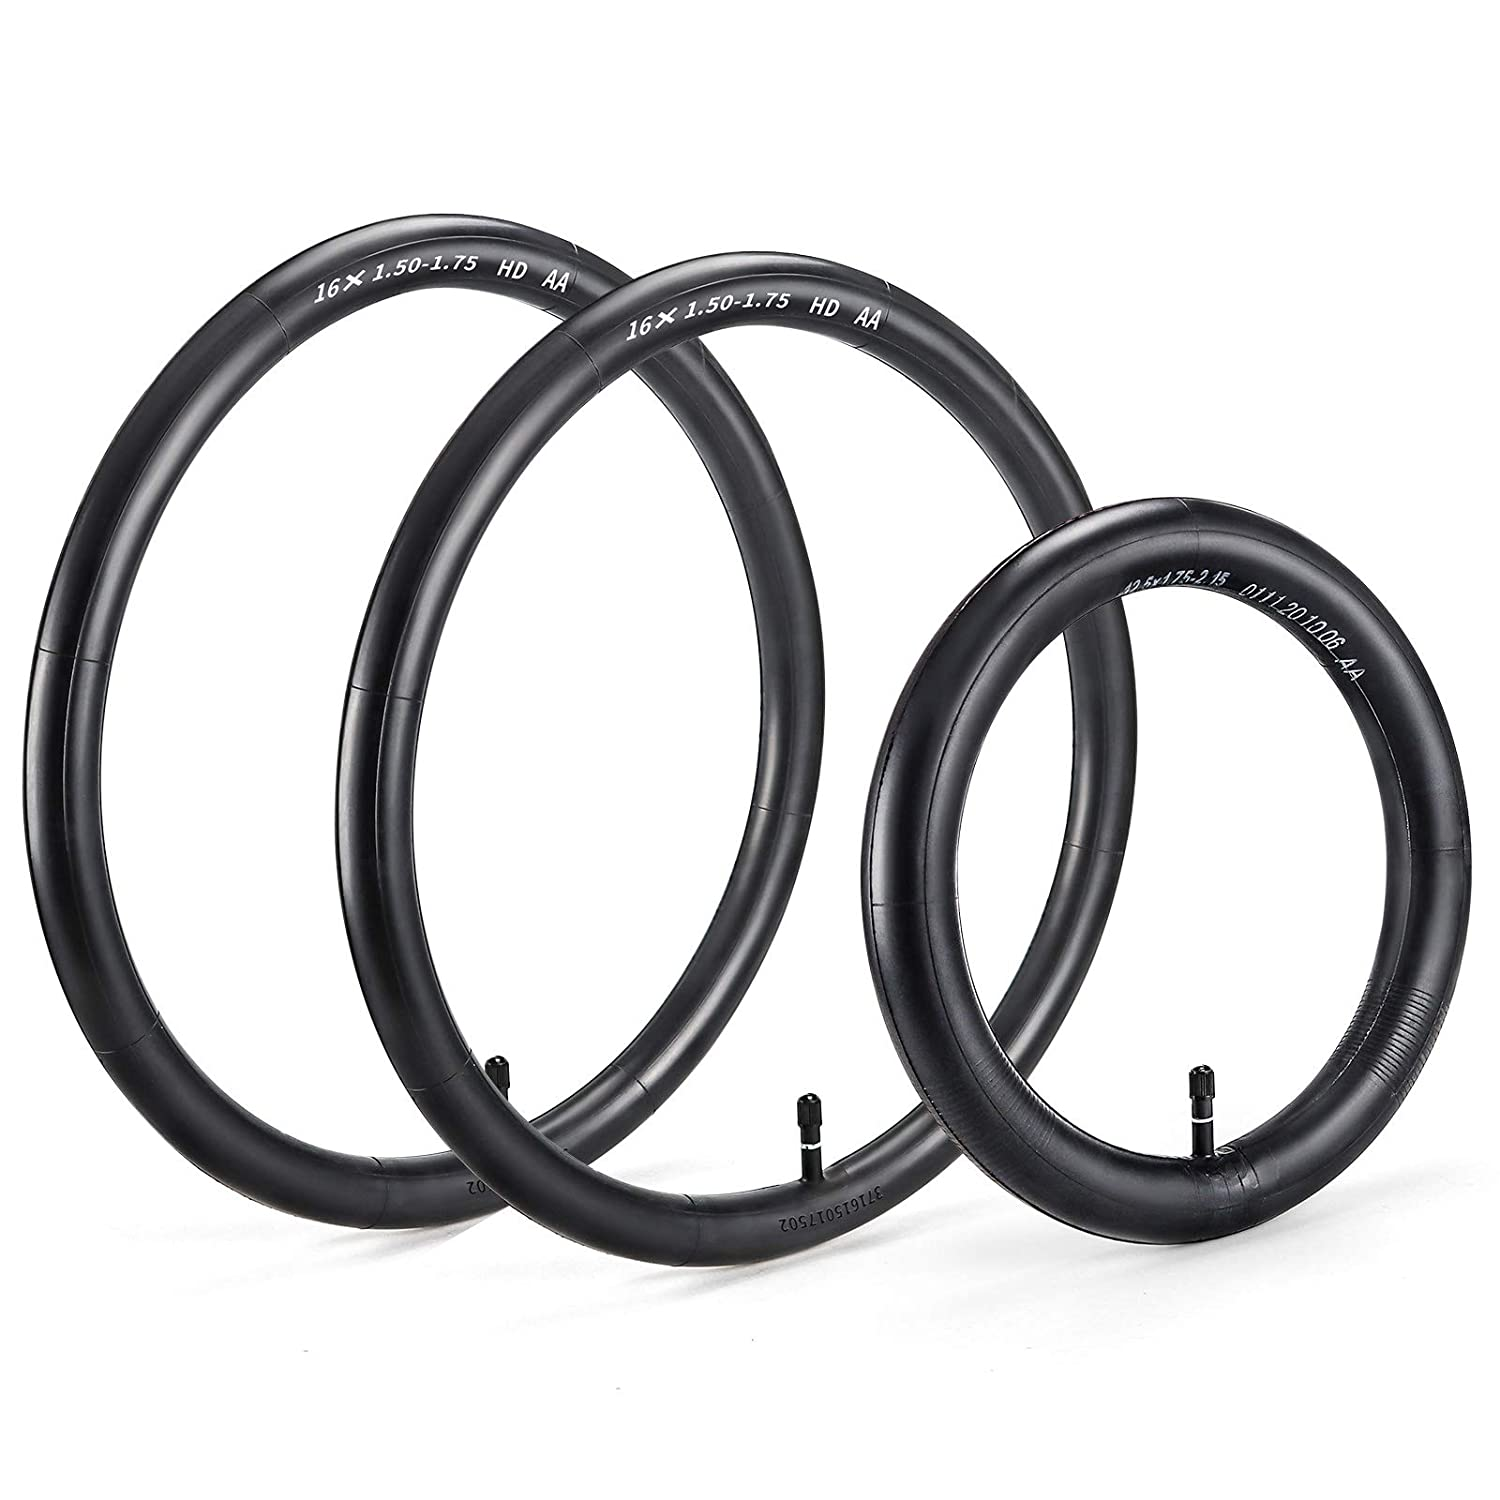 Tire Inner Tubes Two 16'' Back and One 12.5'' Front Premium Explosion Proof Wheel Replacement by Cenipar for All BOB Revolution, Royalbaby, and More Strollers, Set of Three